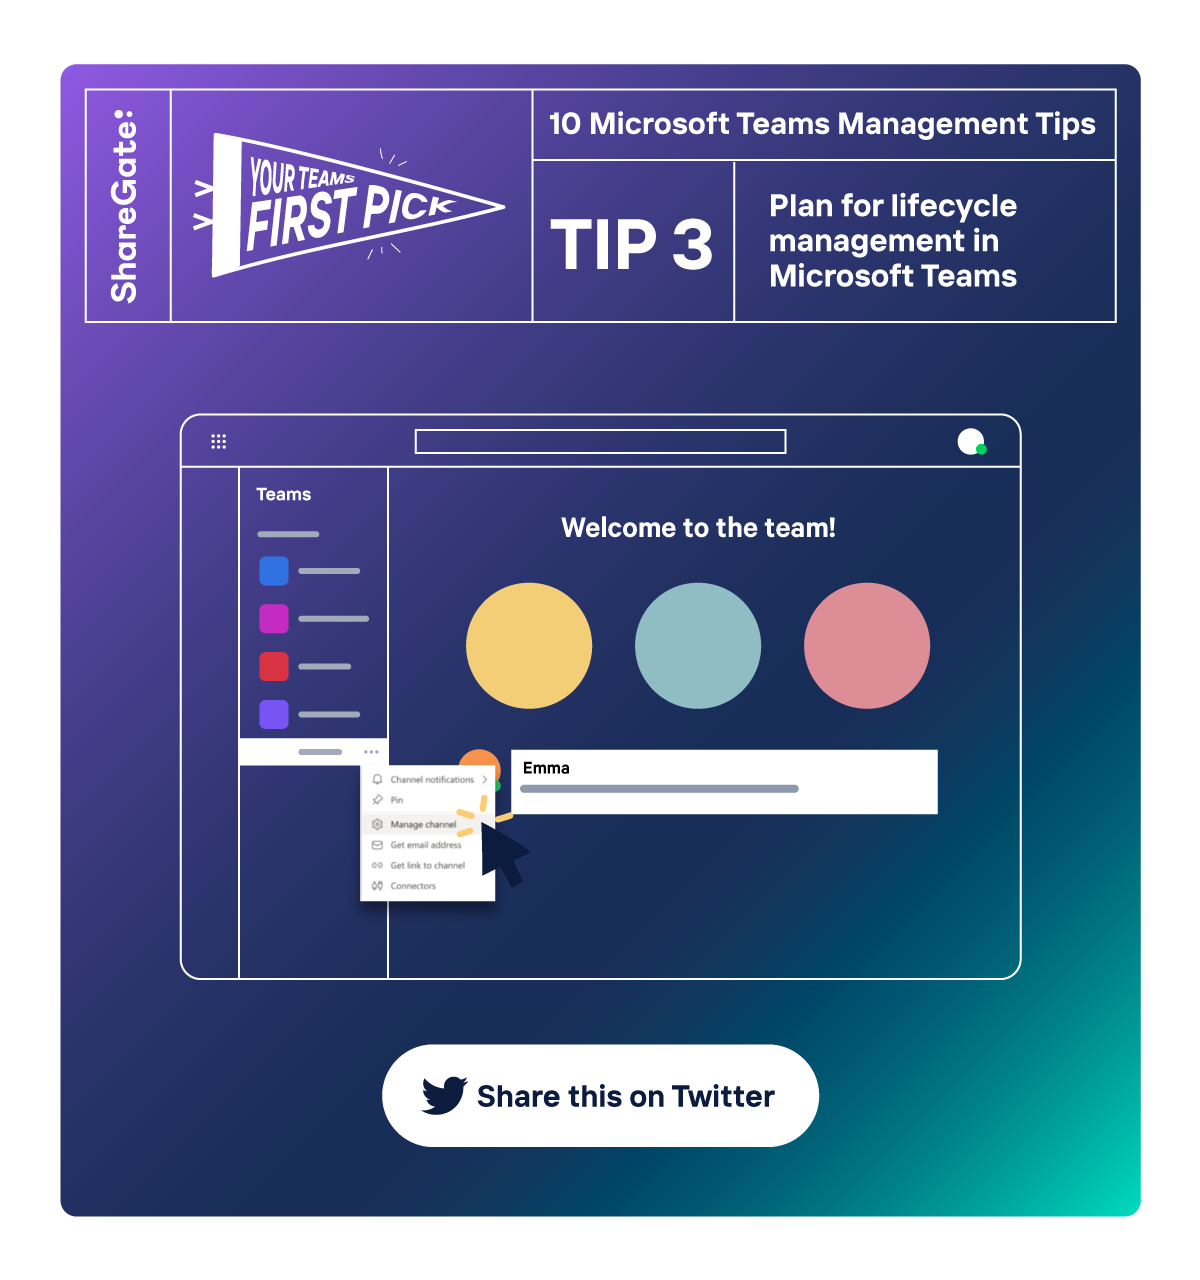 Illustrated infographic showing tip #3: Plan for lifecycle management in Microsoft Teams.